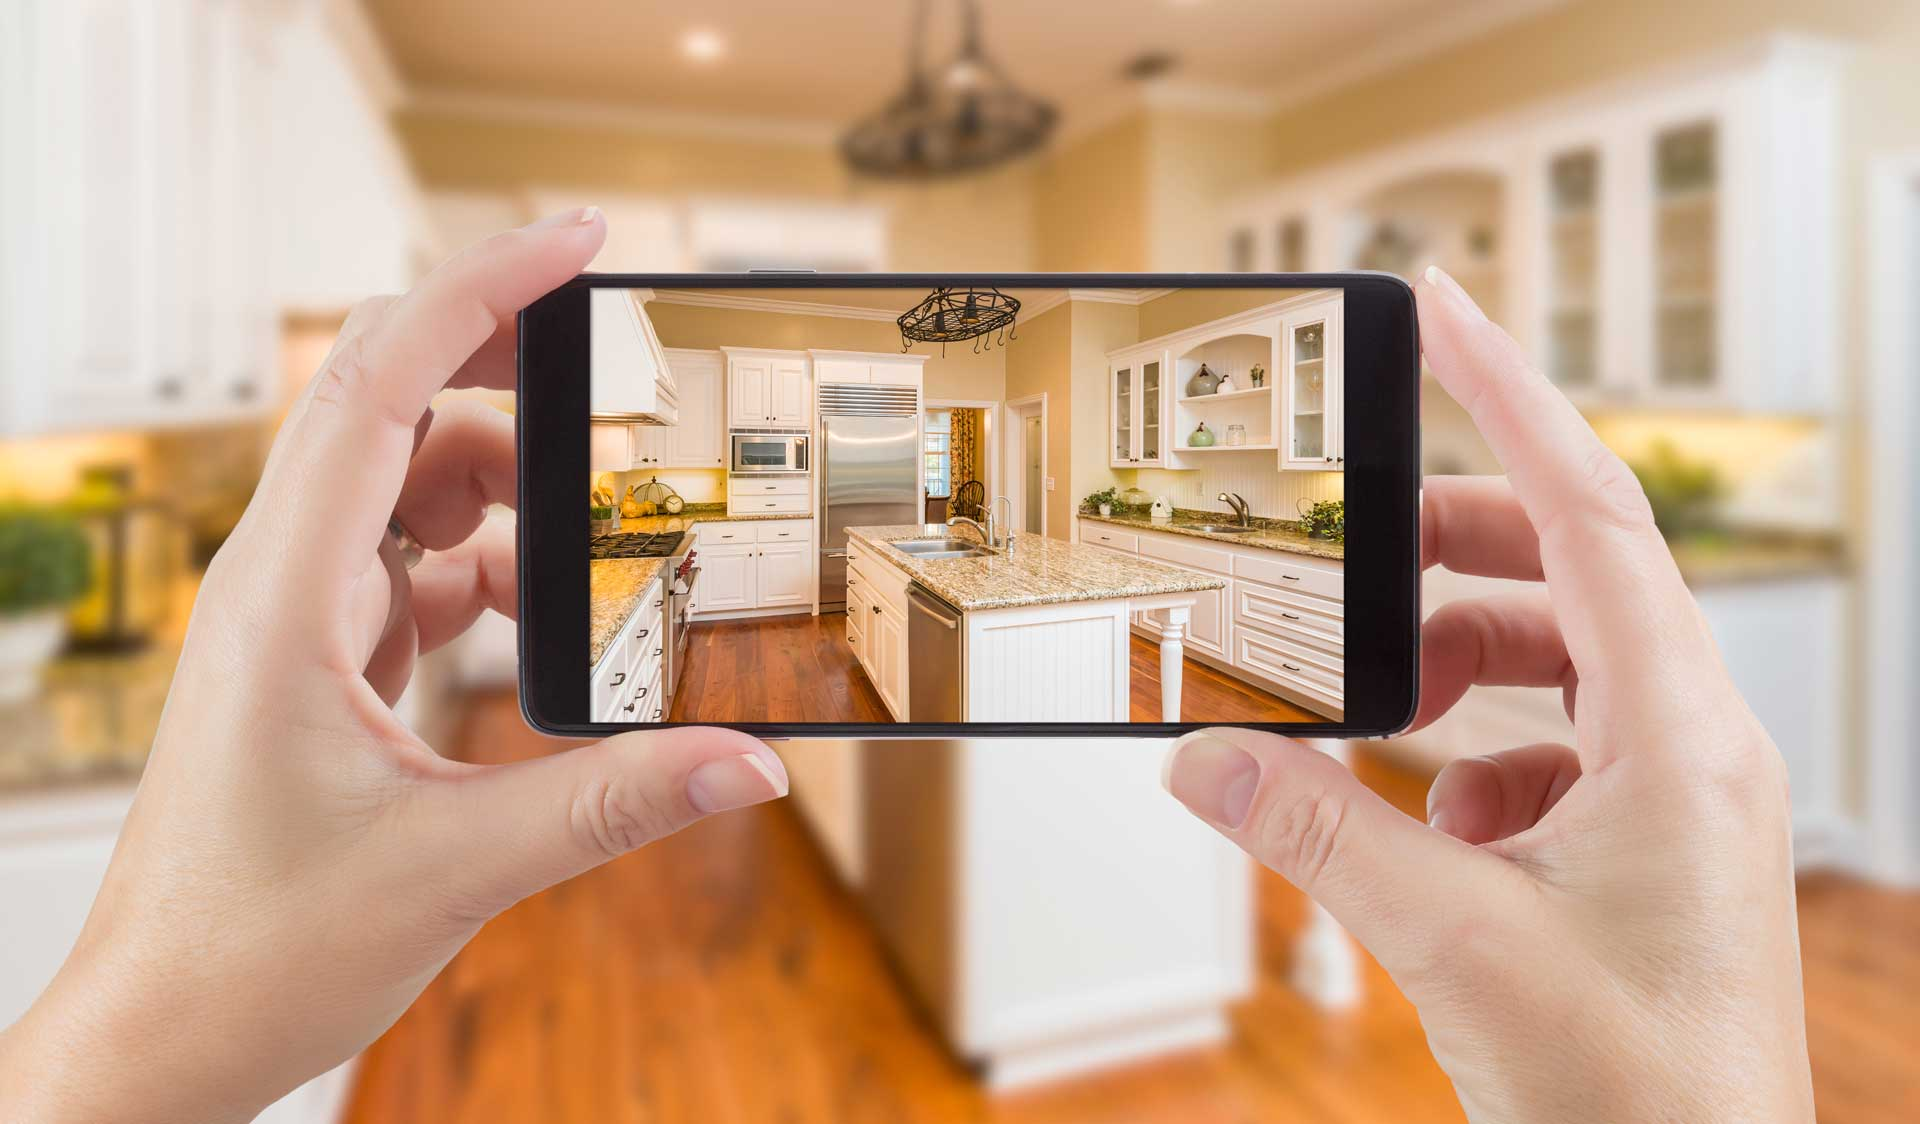 Someone taking a video of their kitchen via their mobile phone